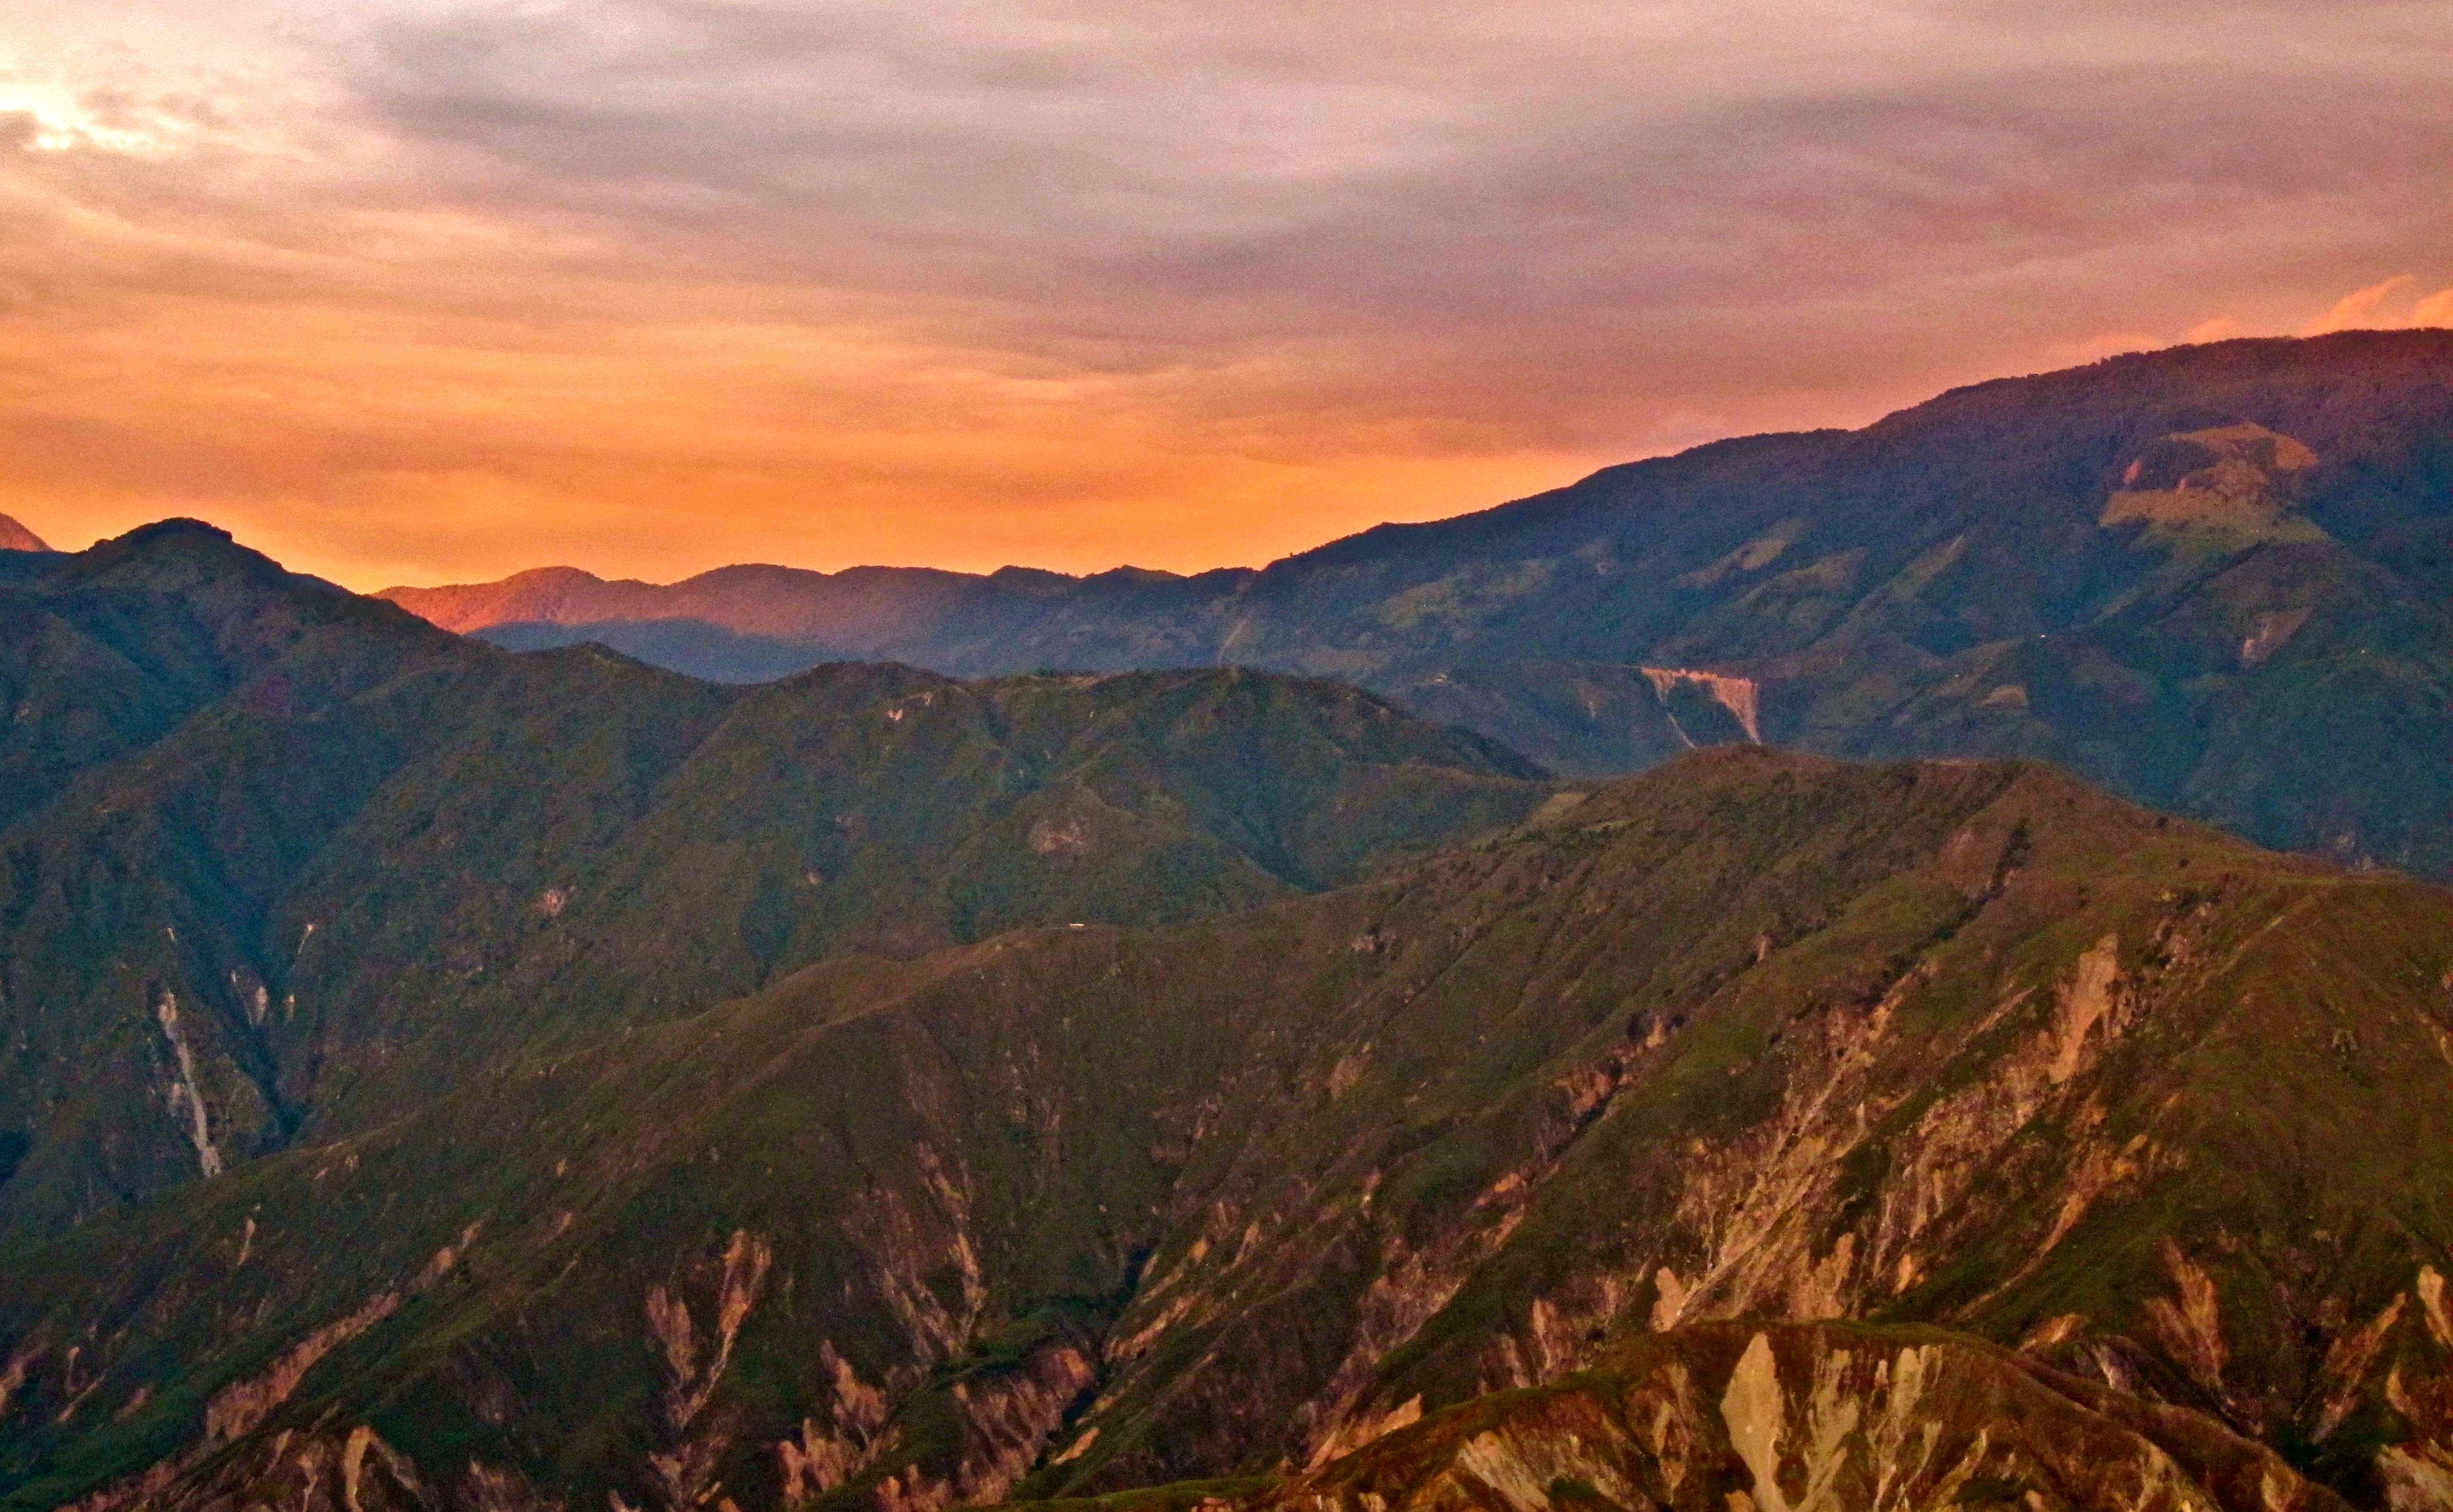 Chicamocha Canyon Colombia Sunset Tram 26.